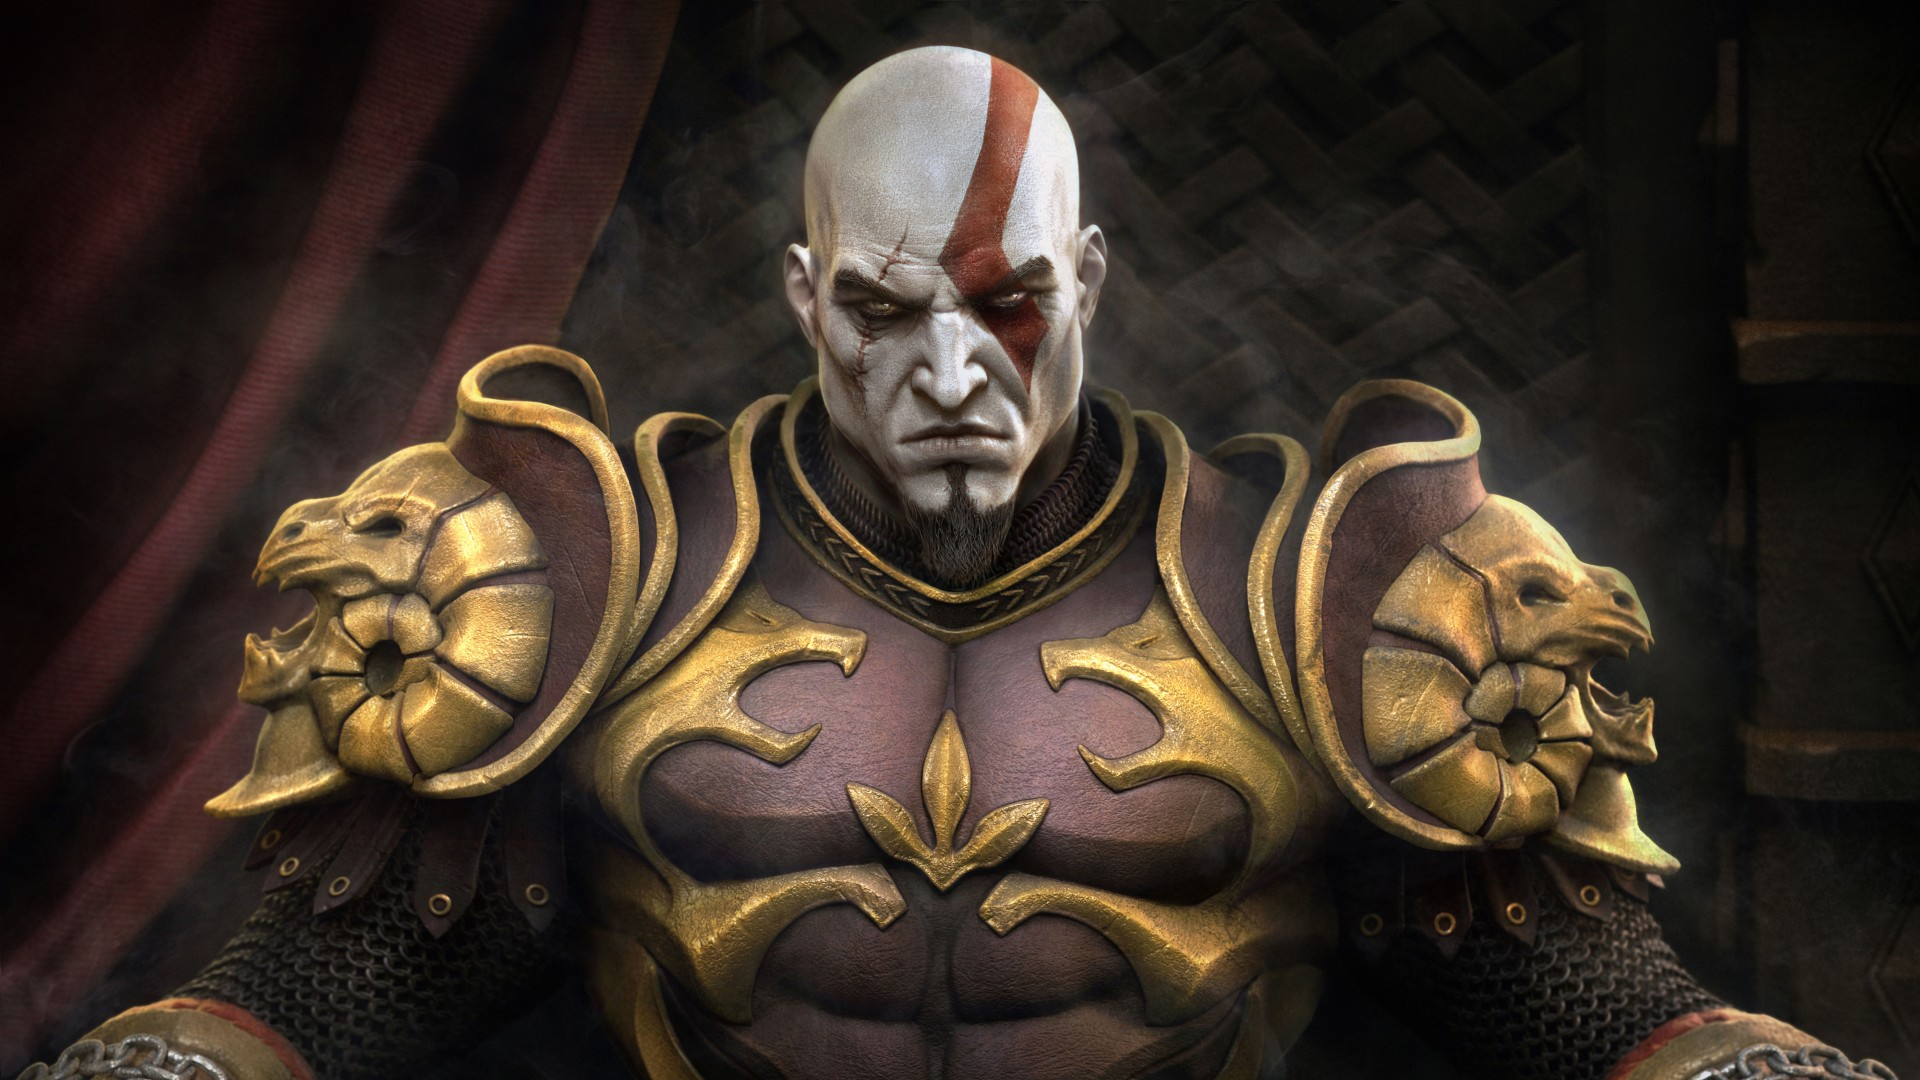 Cool Cute Wallpaper For Iphone Kratos Throne 4k 8k Wallpapers Hd Wallpapers Id 24090